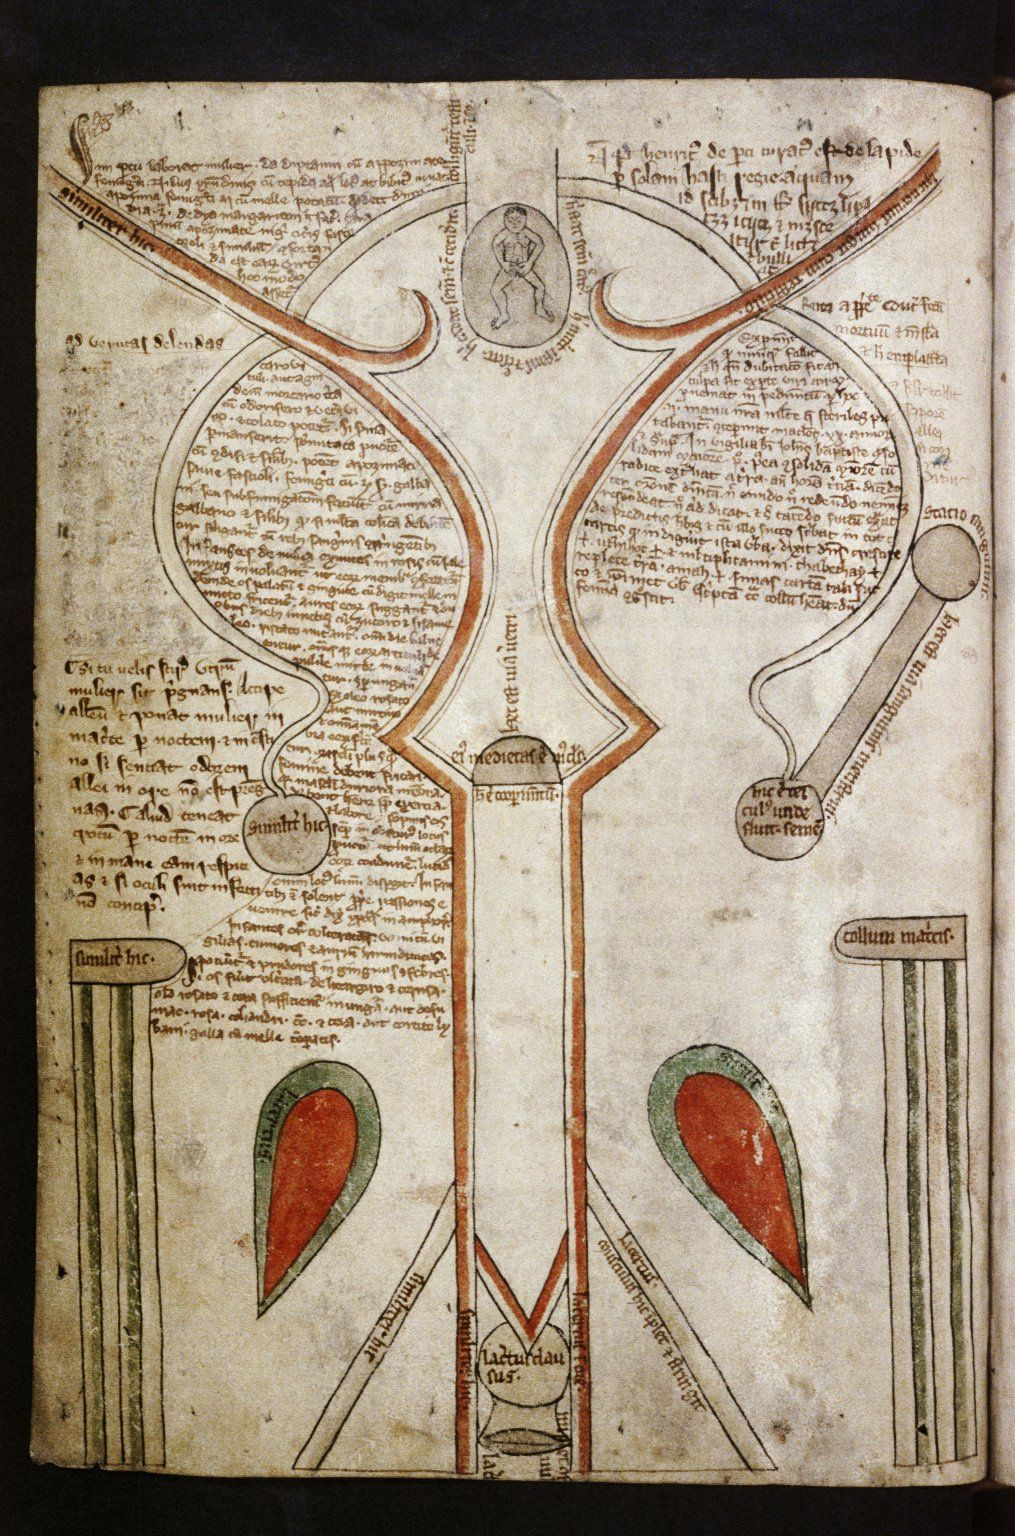 Drawings of the female genitalia from the Bodleian, MS. Ashmole 399, f. 153a and f. 013v. Treatise on the Human Body. England, c.1292.